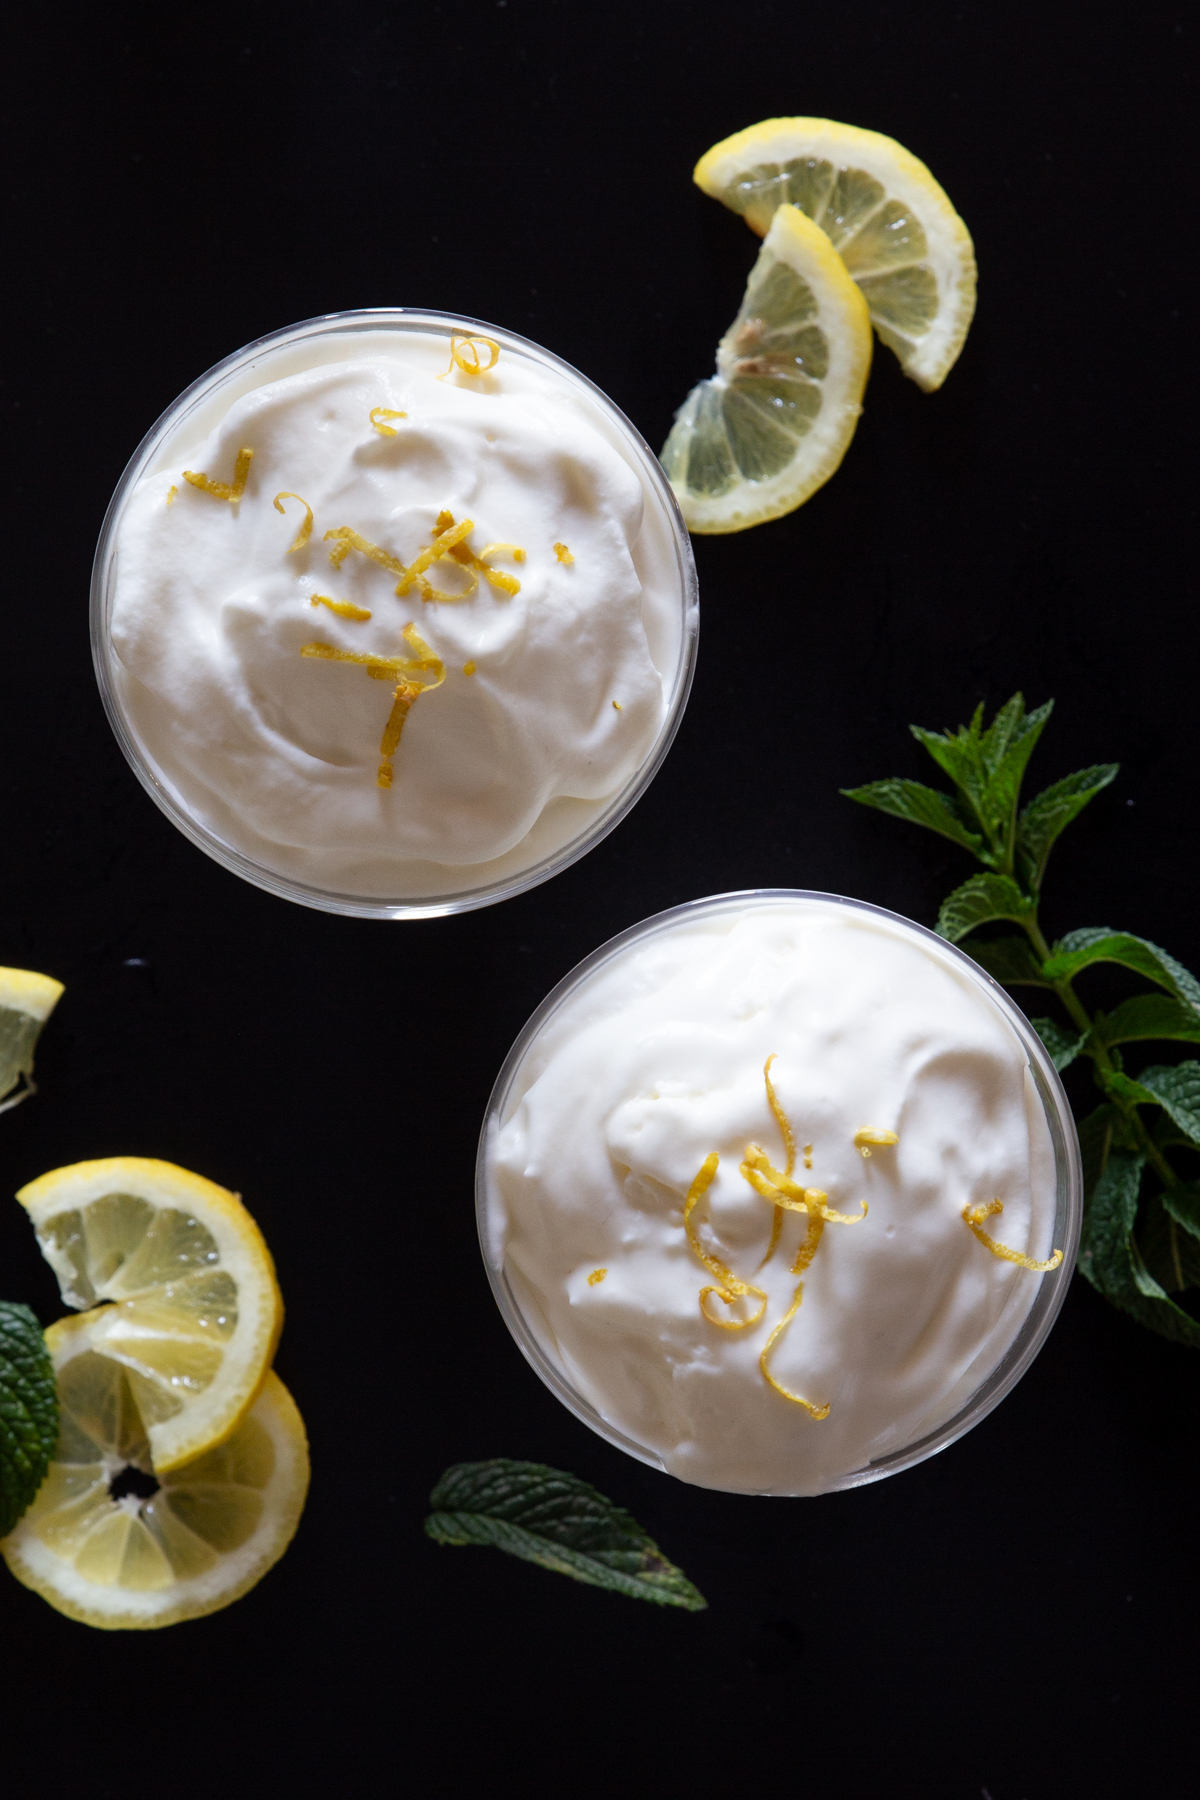 Limoncino in 2 glasses with slices of lemon.